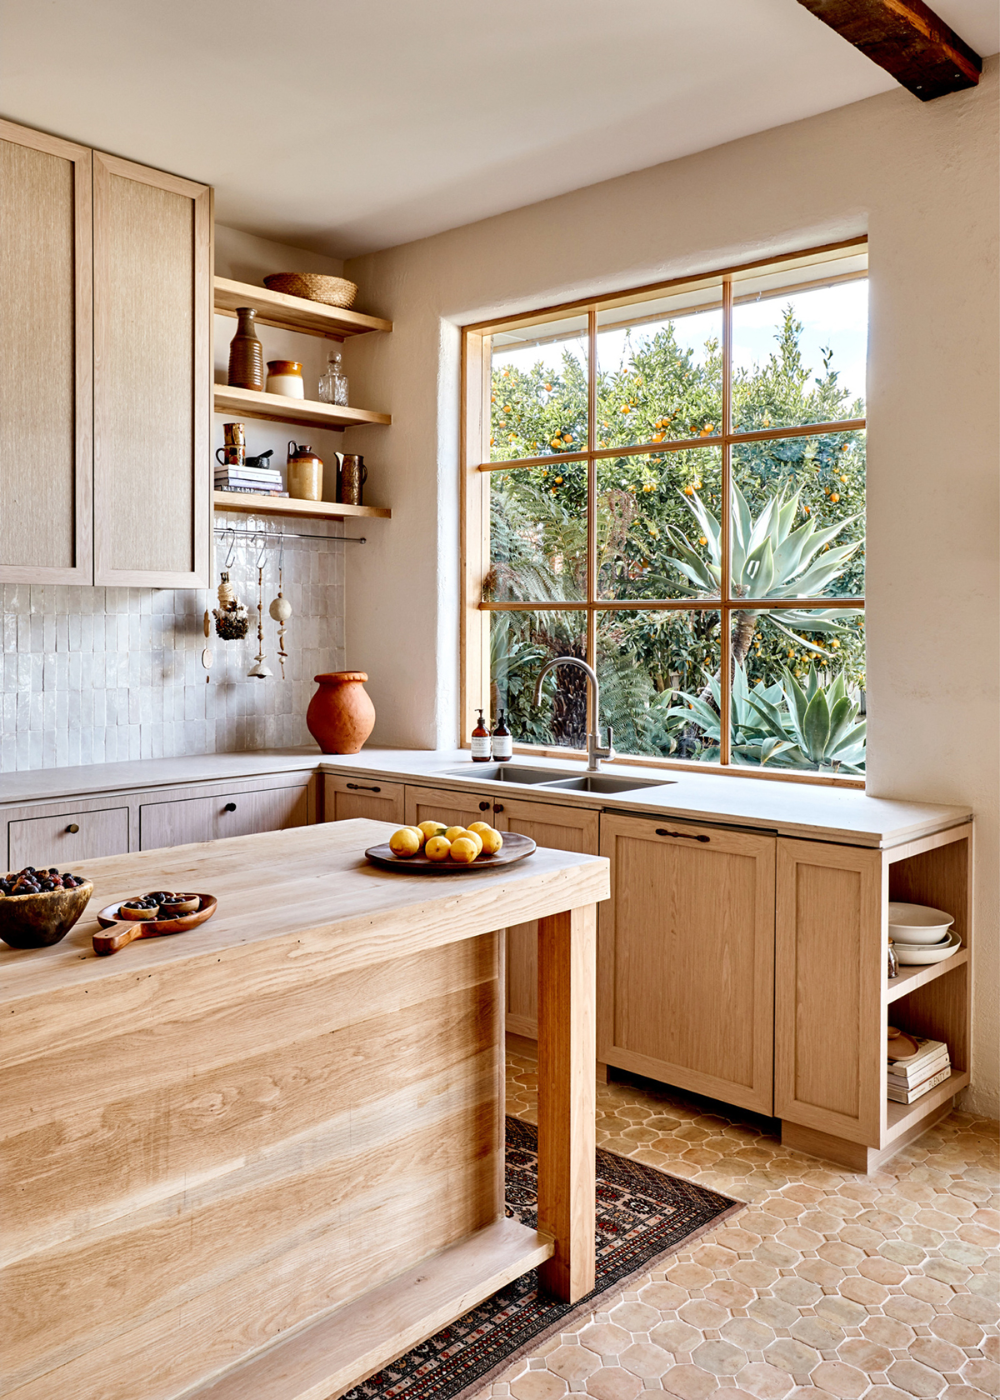 Room of the Week :: Warm Woods & Old World Accents In this Minimal Kitchen - coco kelley coco kelley